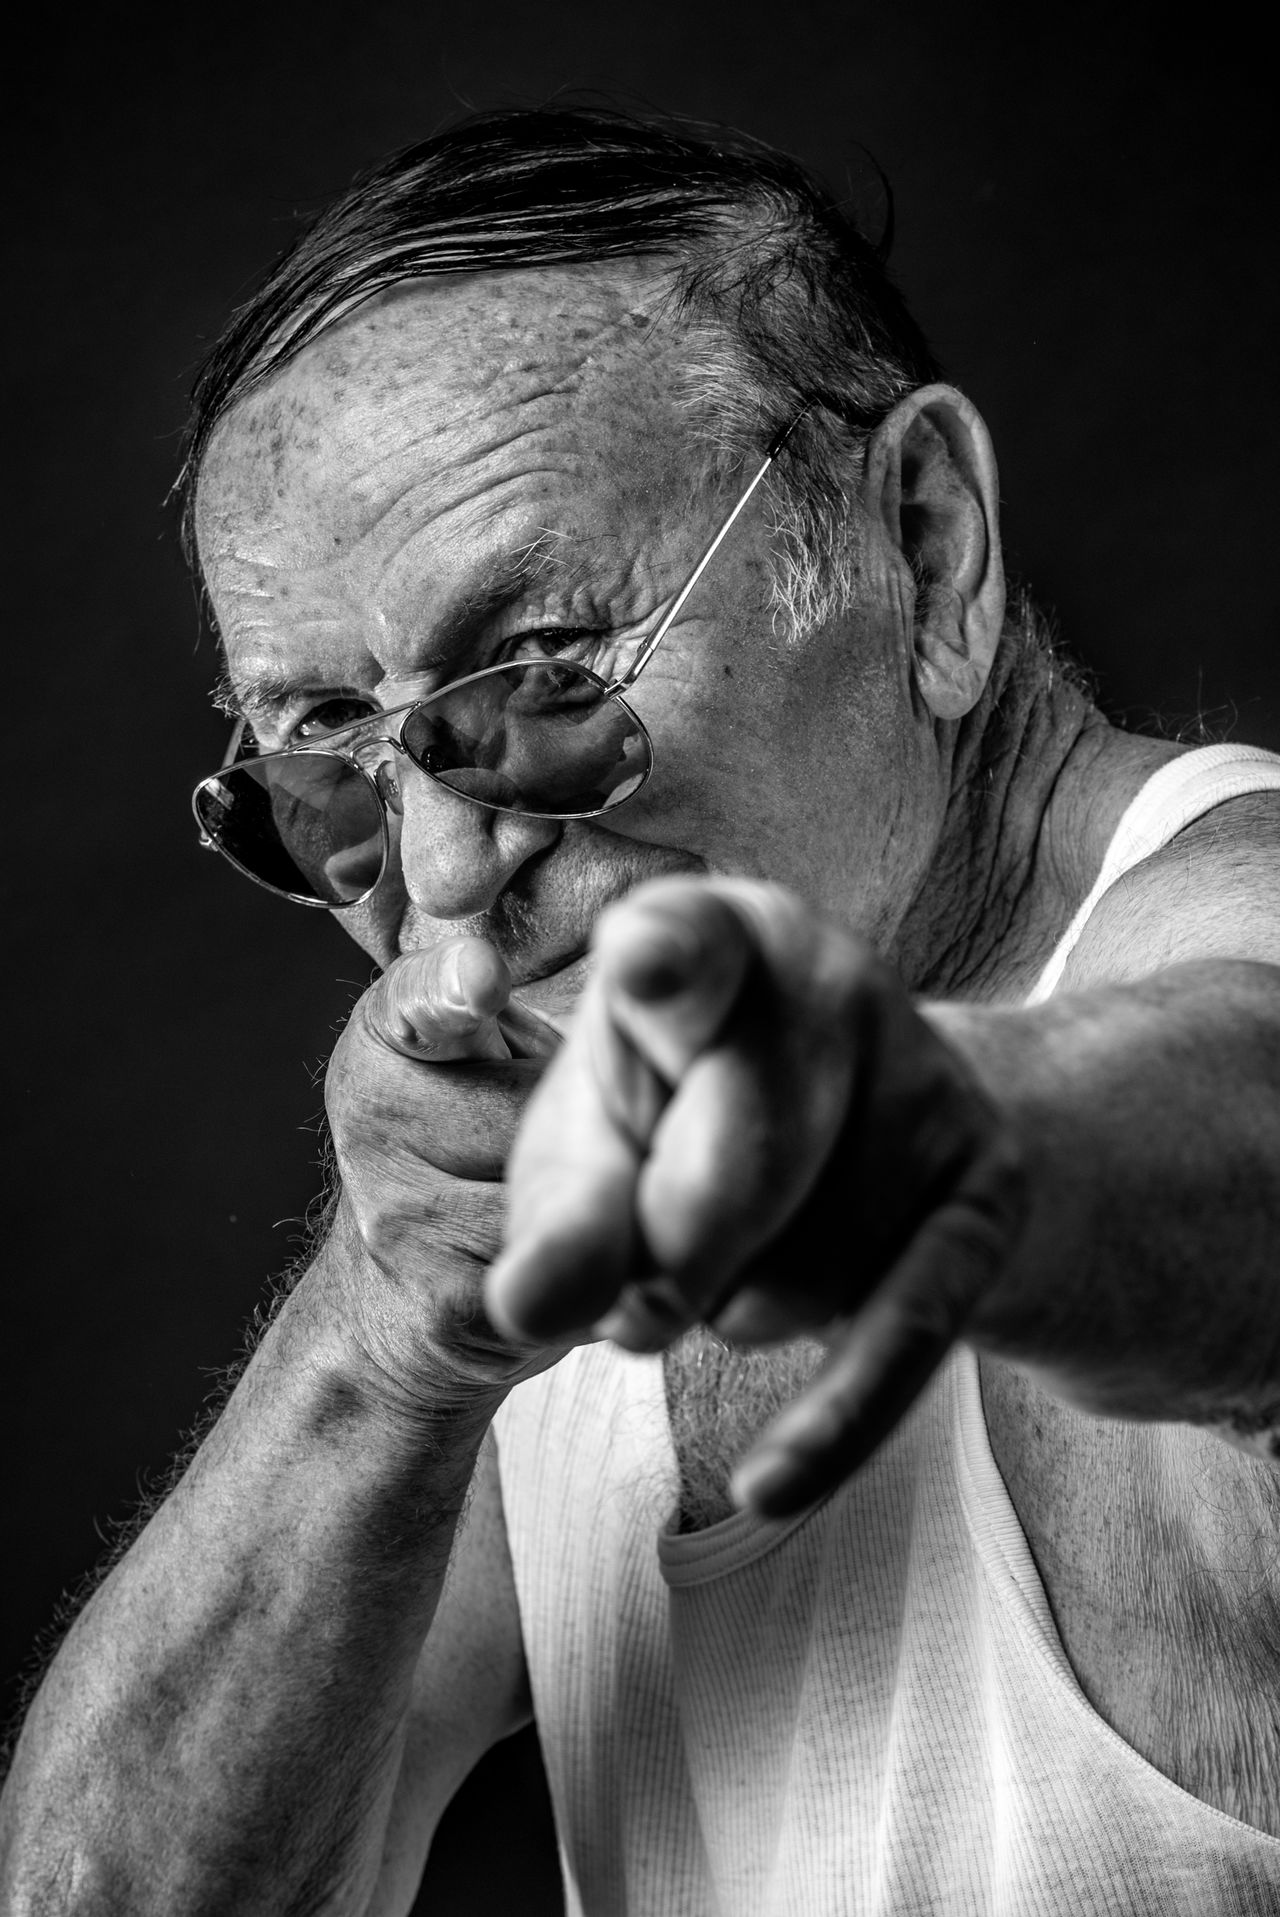 Adult Adults Only Black And White Black Background Black Background Blackandwhite Close-up Headshot Human Hand Looking At Camera Men One Person People Portrait Portrait Photography Senior Adult Senior Men Studio Photography Studio Shot The Portraitist - 2017 EyeEm Awards